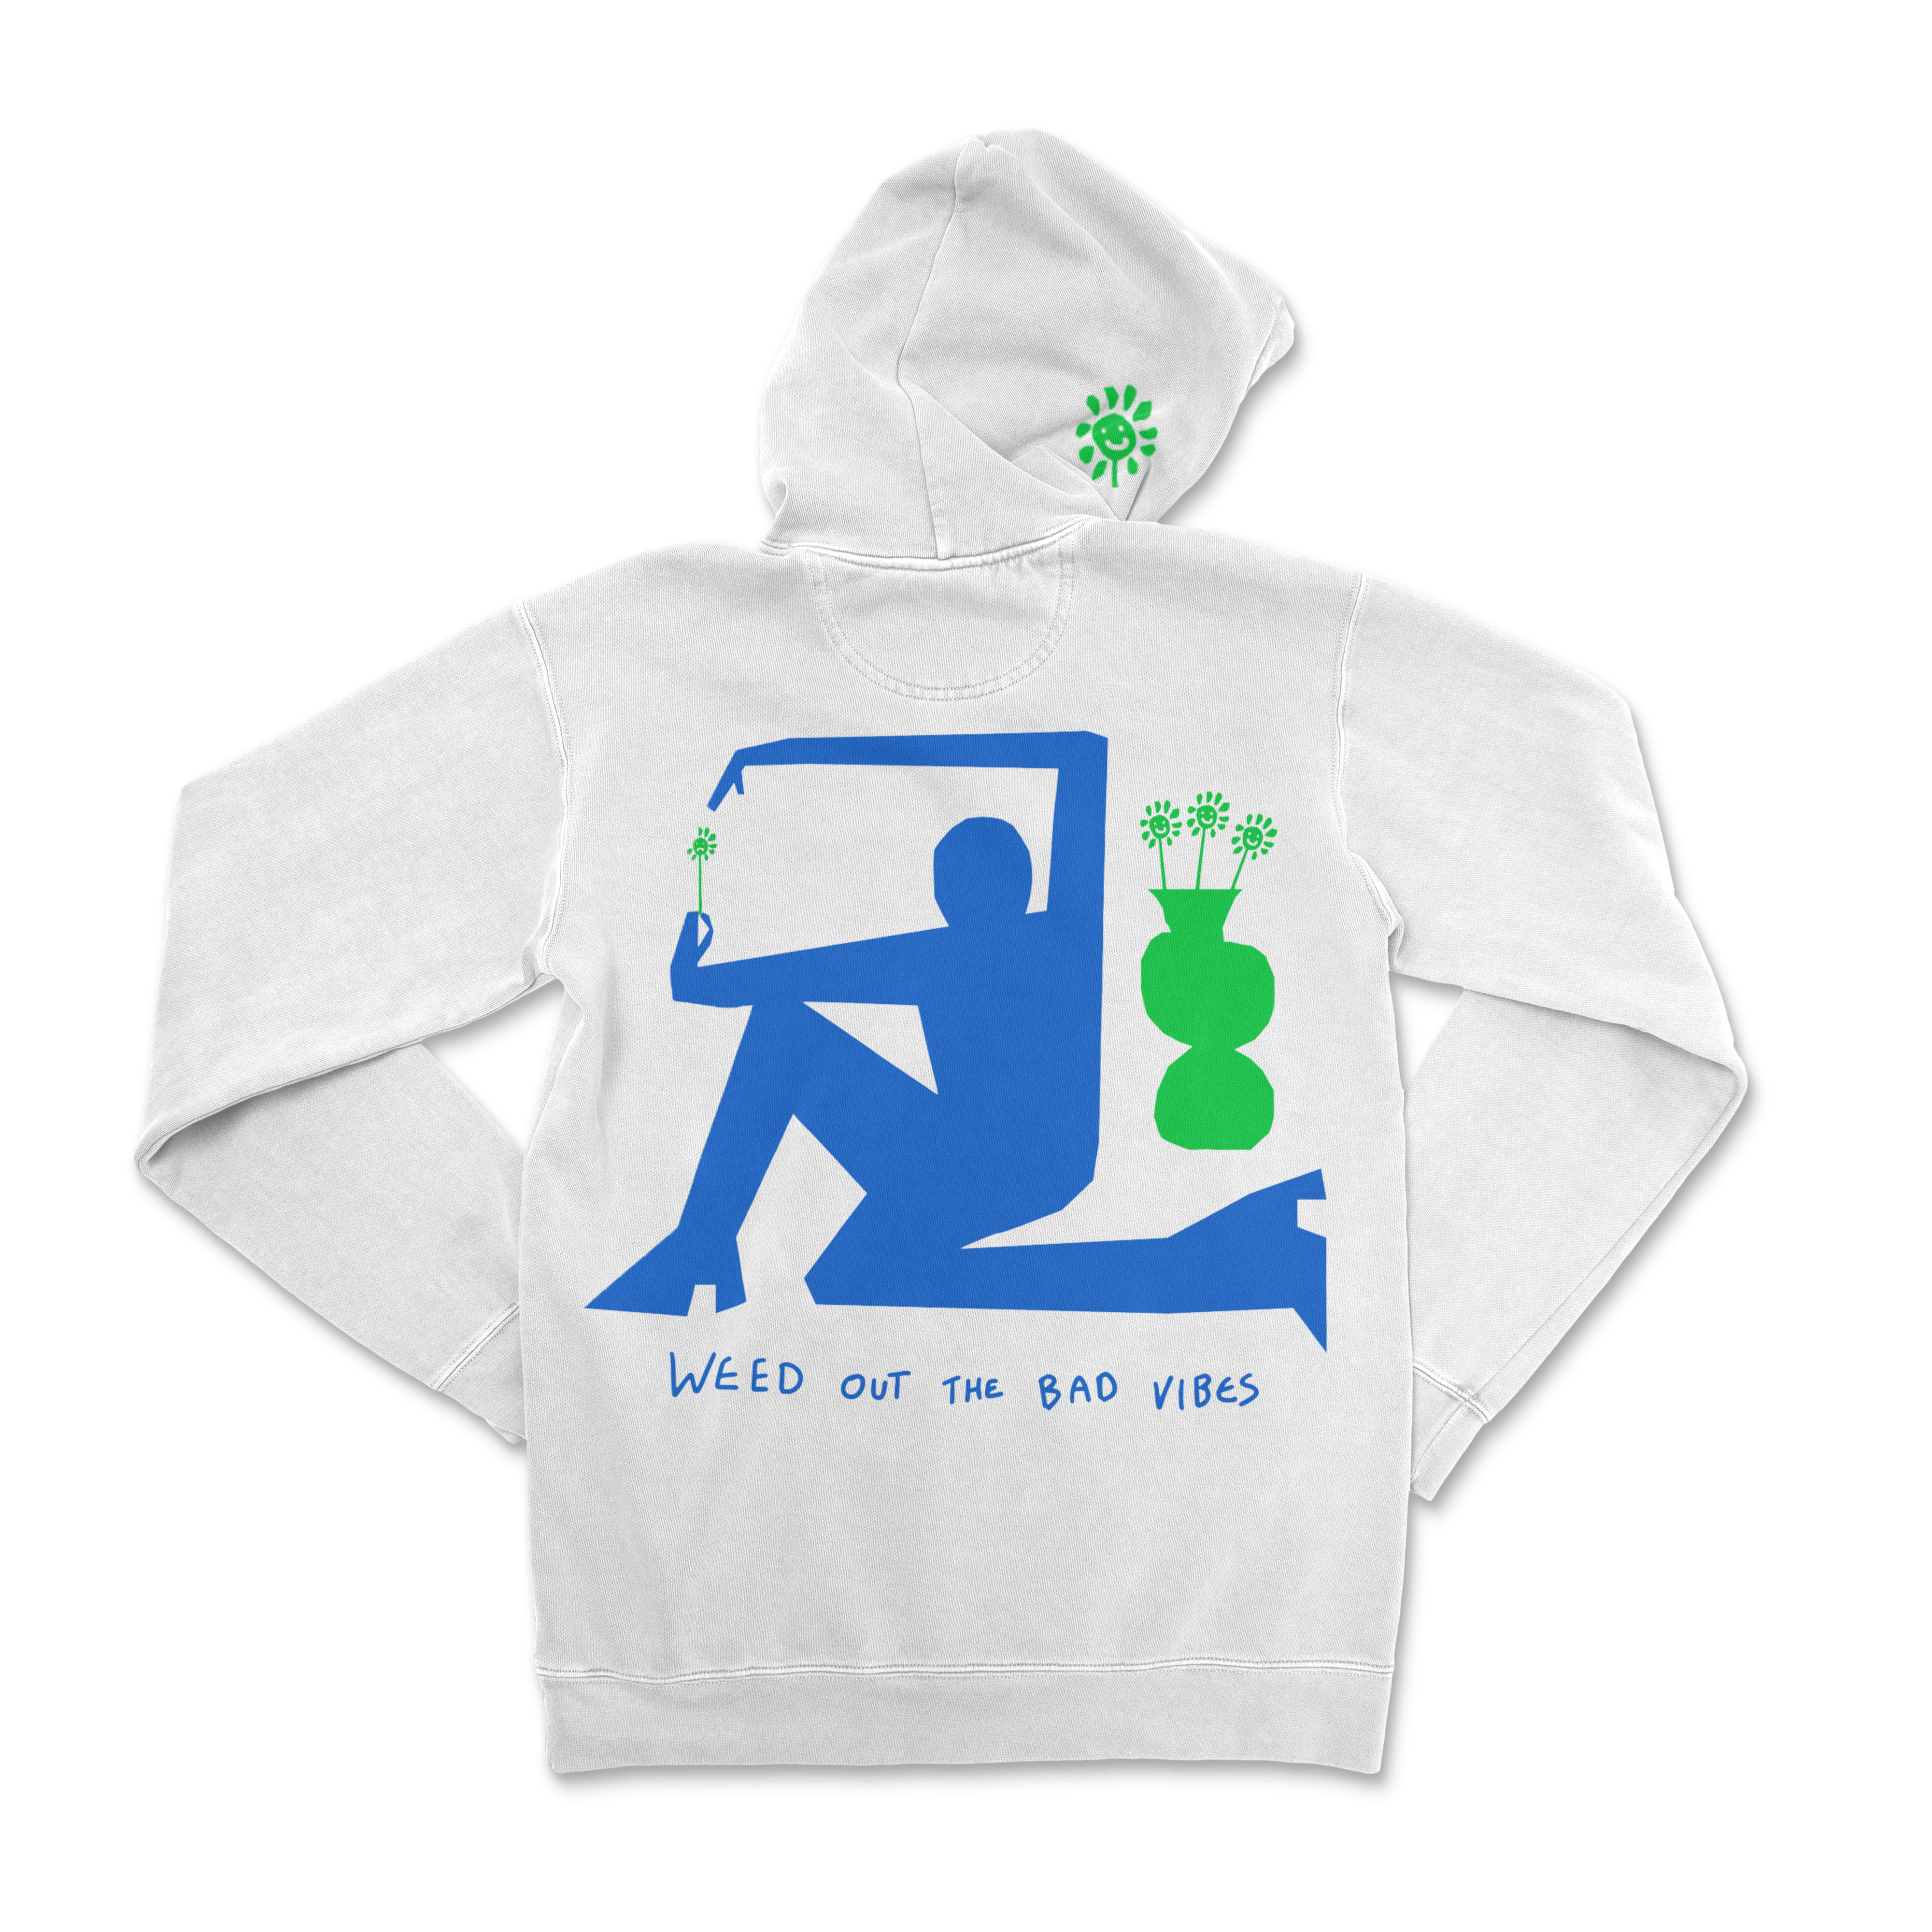 Weed Out The Bad Vibes Hoodie - Sackville & Co.